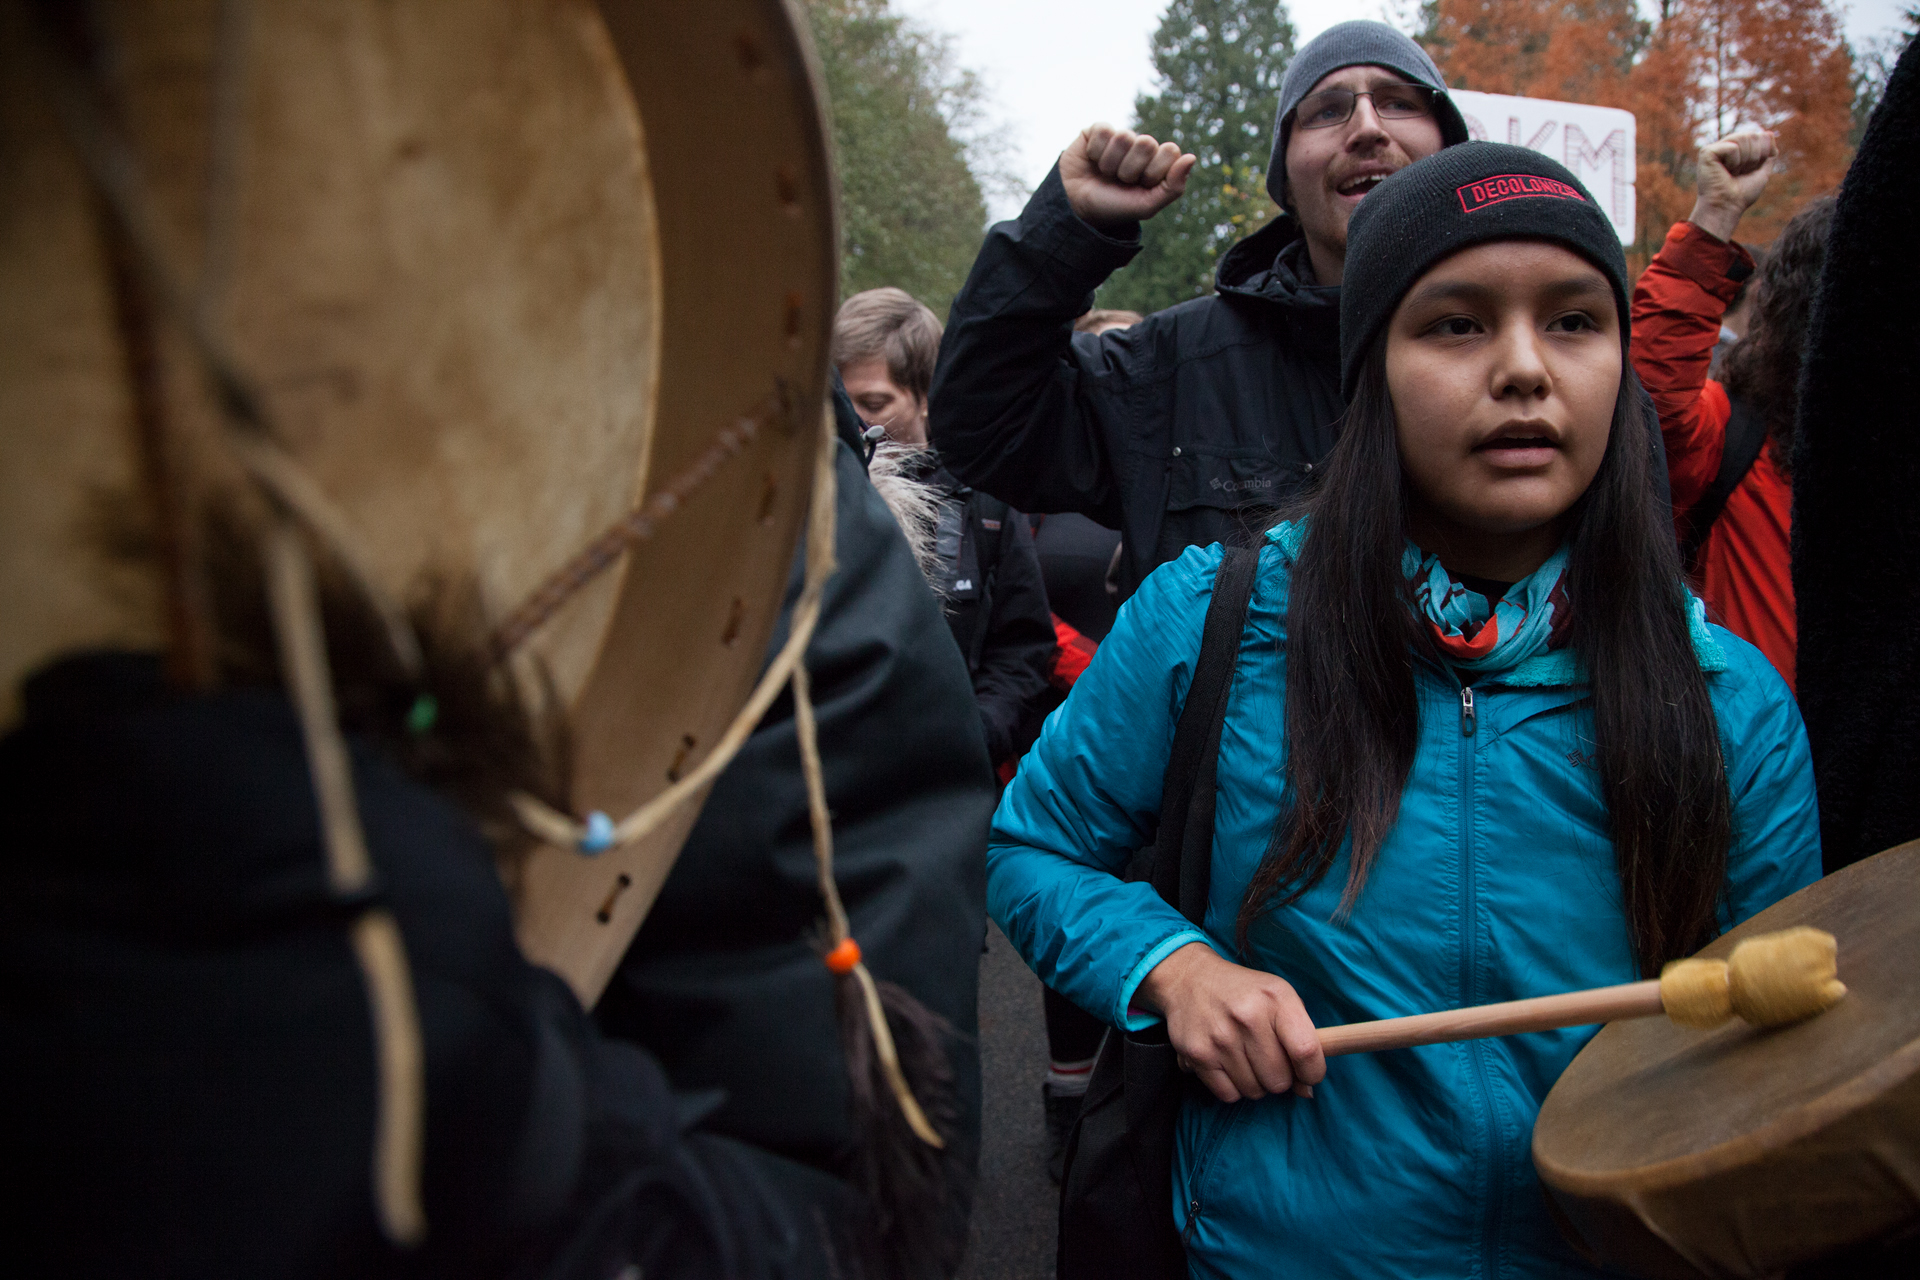 A young First Nations girl protests against Kinder Morgan.